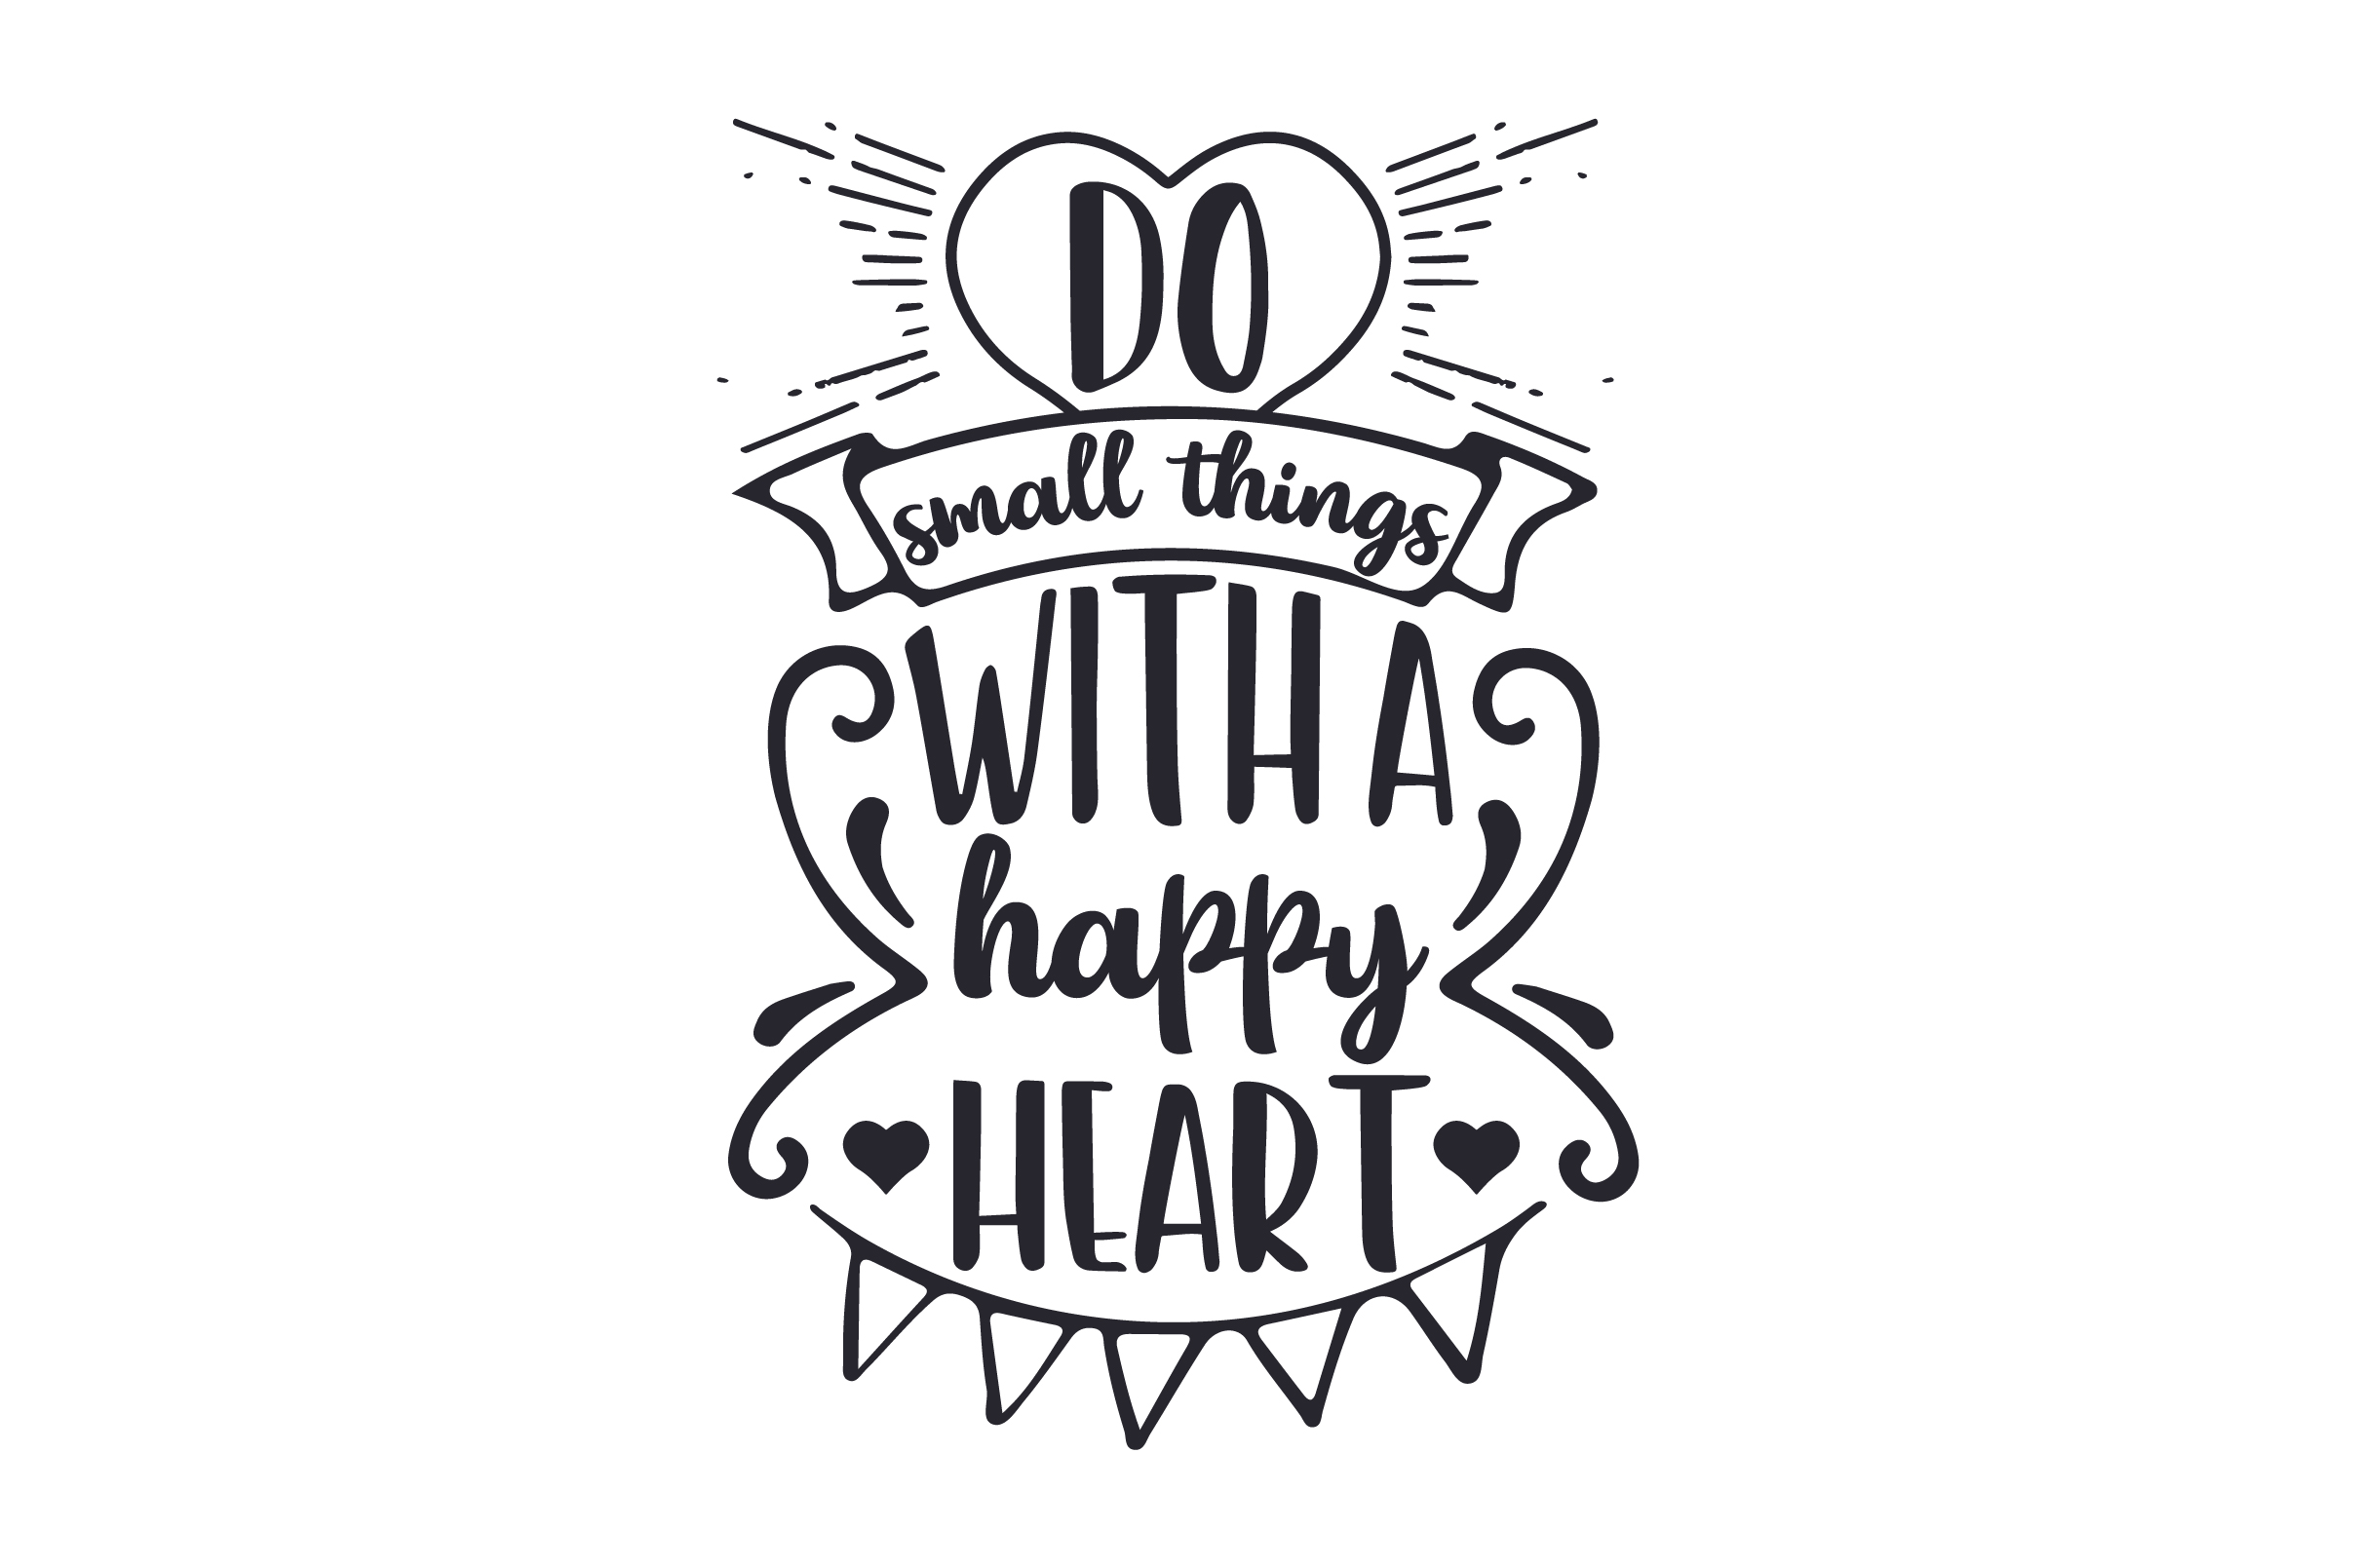 Download Free Do Small Things With A Happy Heart Svg Cut File By Creative for Cricut Explore, Silhouette and other cutting machines.